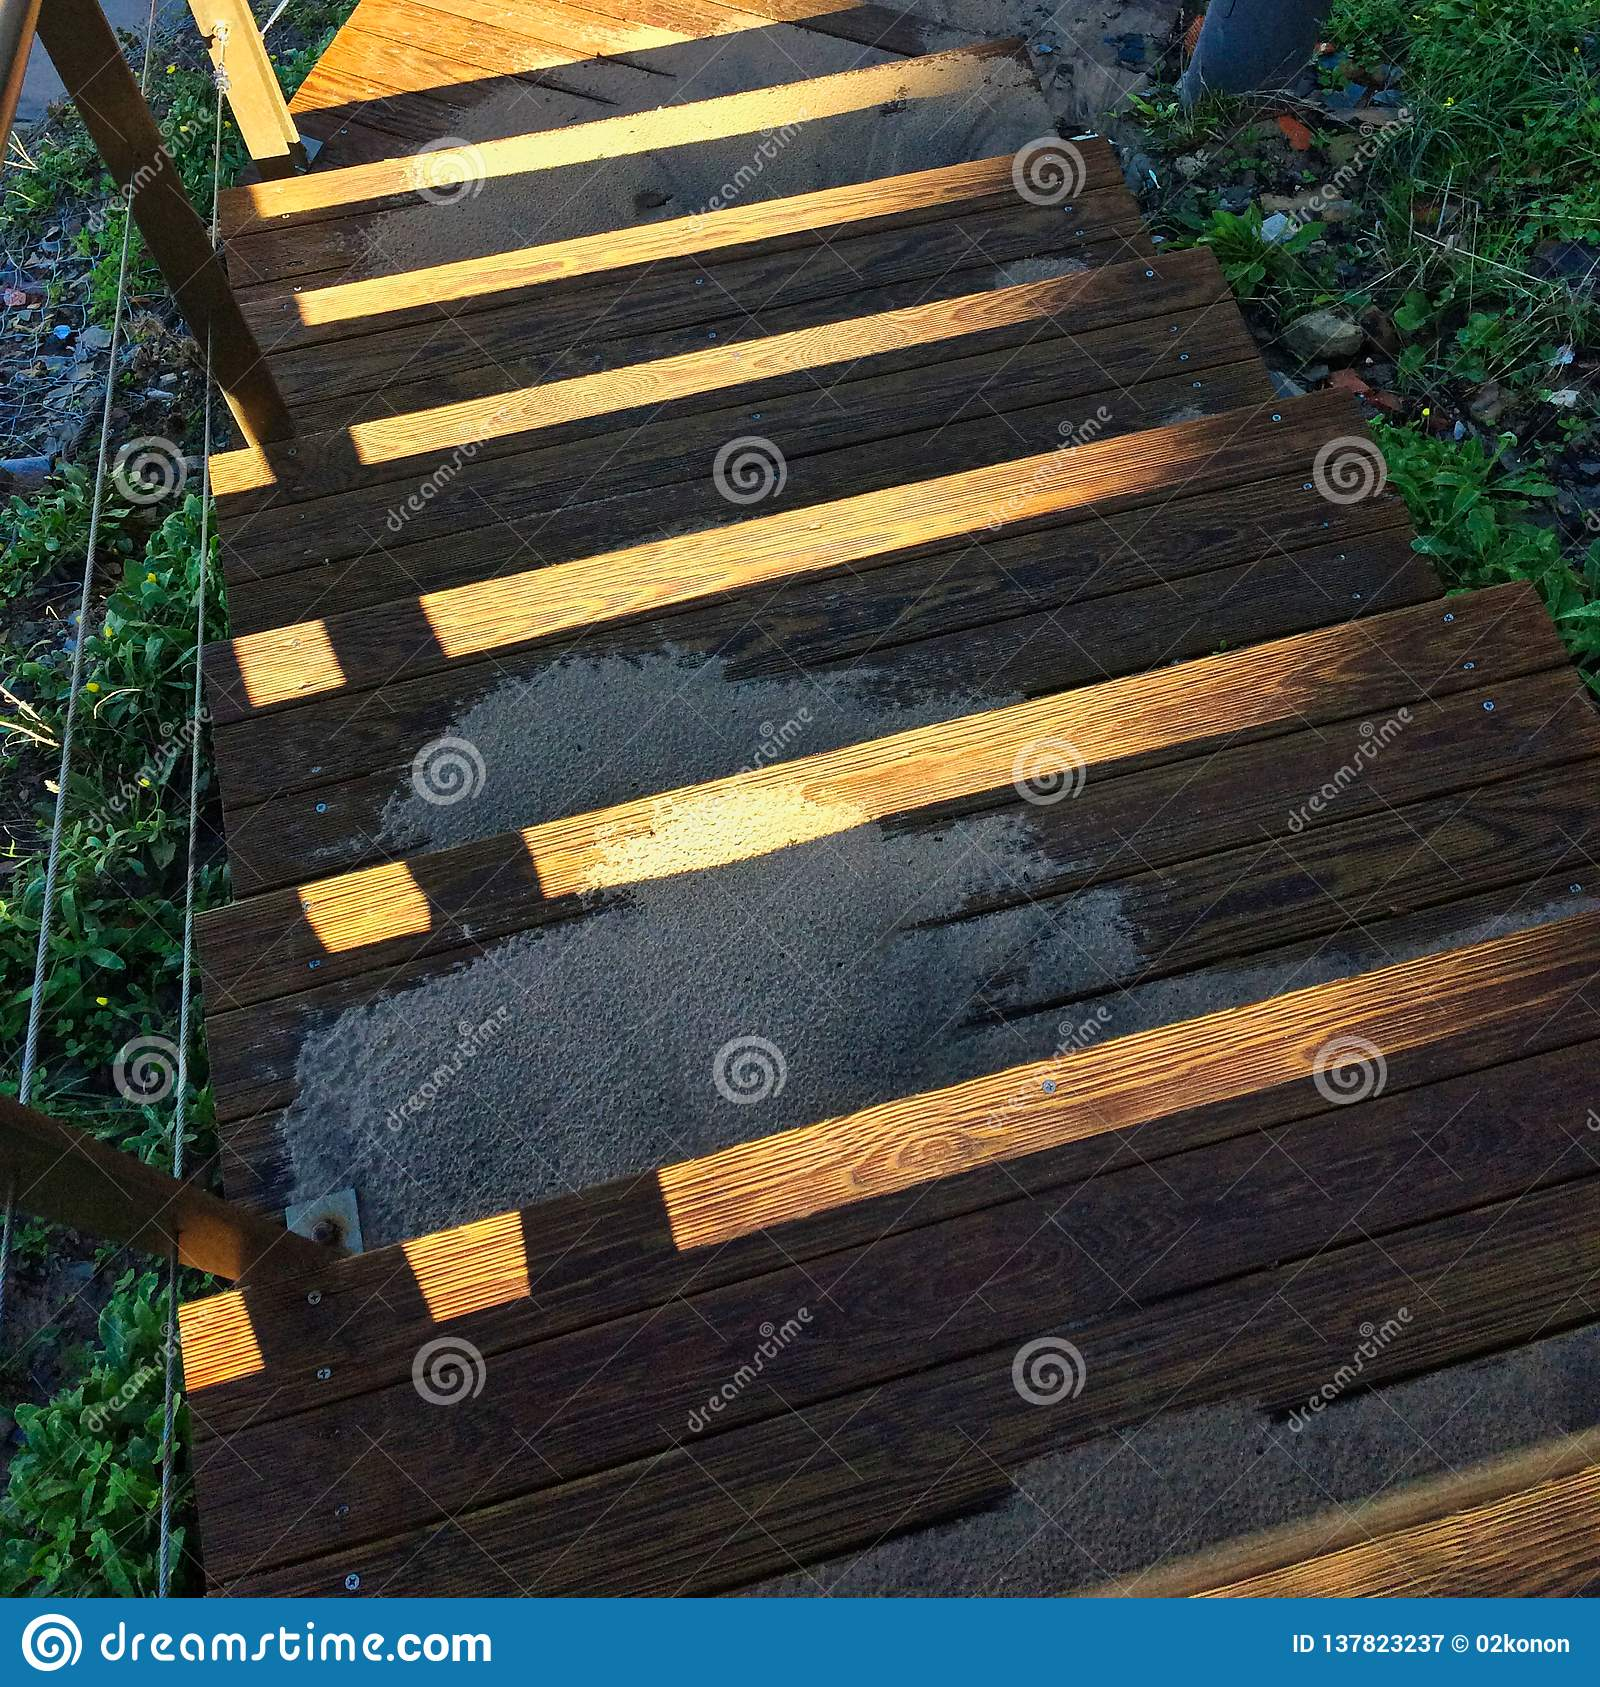 Steep Wooden Staircase Leading Down, Sand Scattered On The